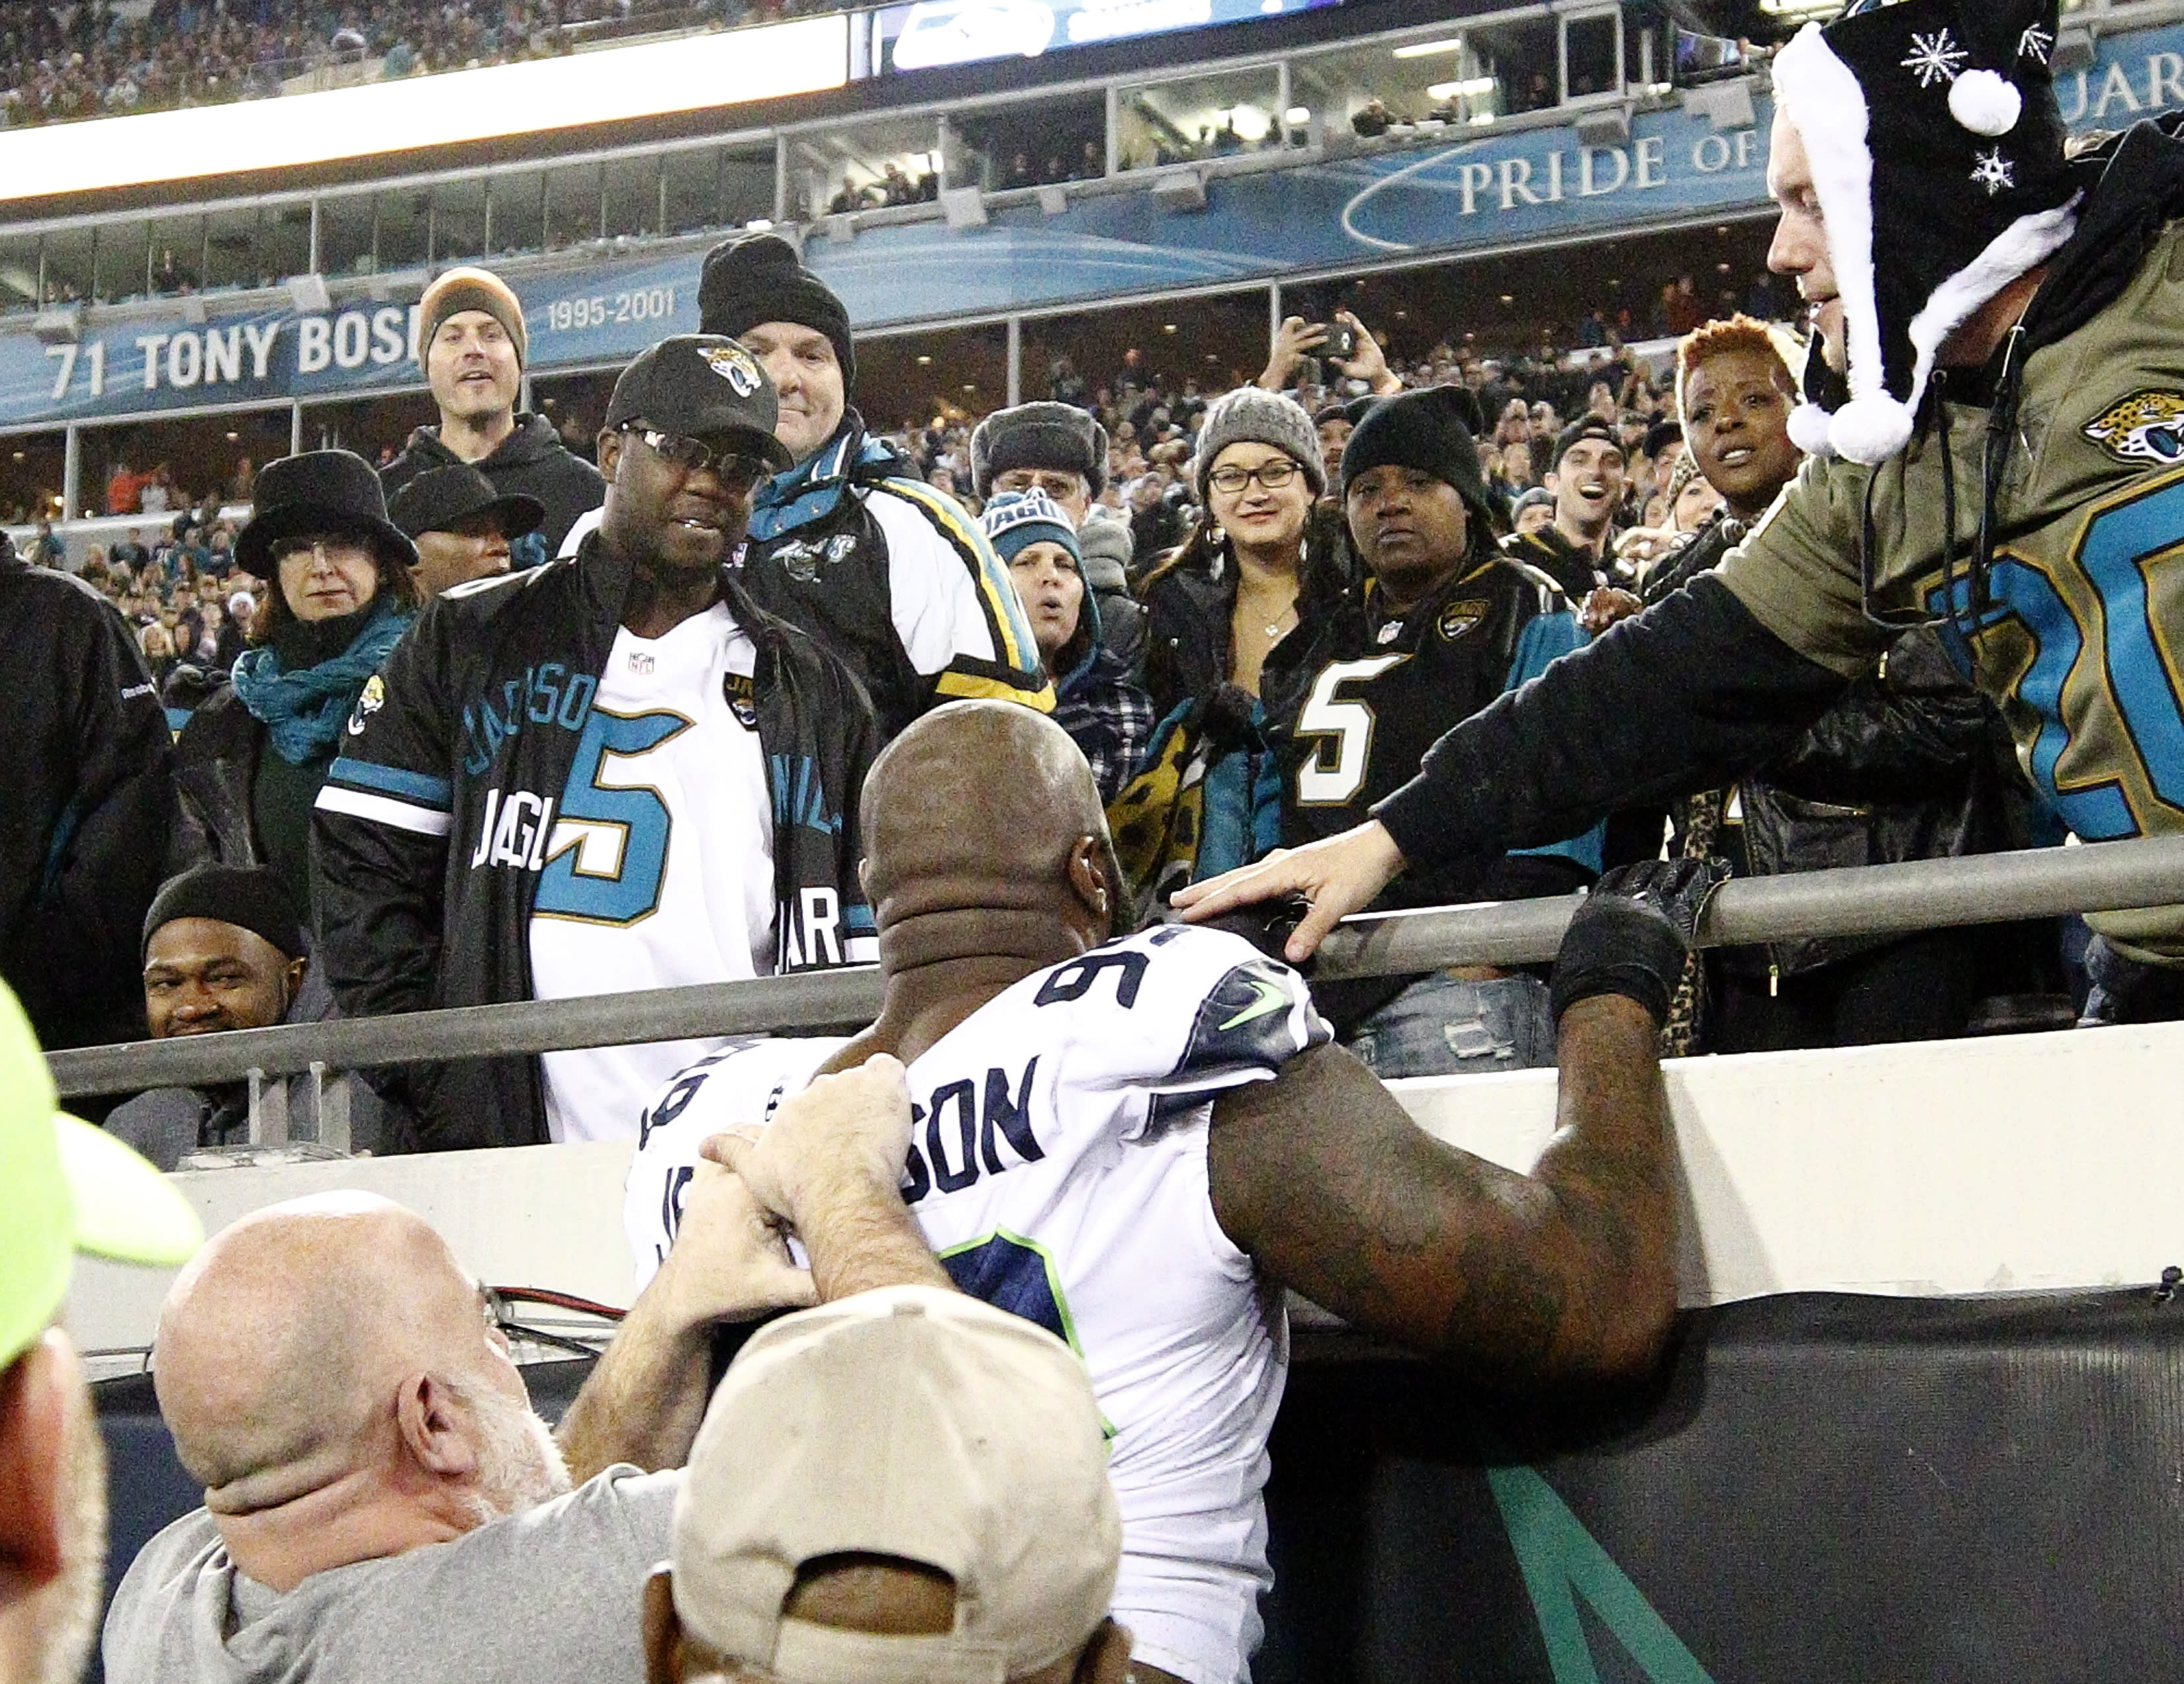 Two Jaguars fans banned from stadium after incident with Seahawks player